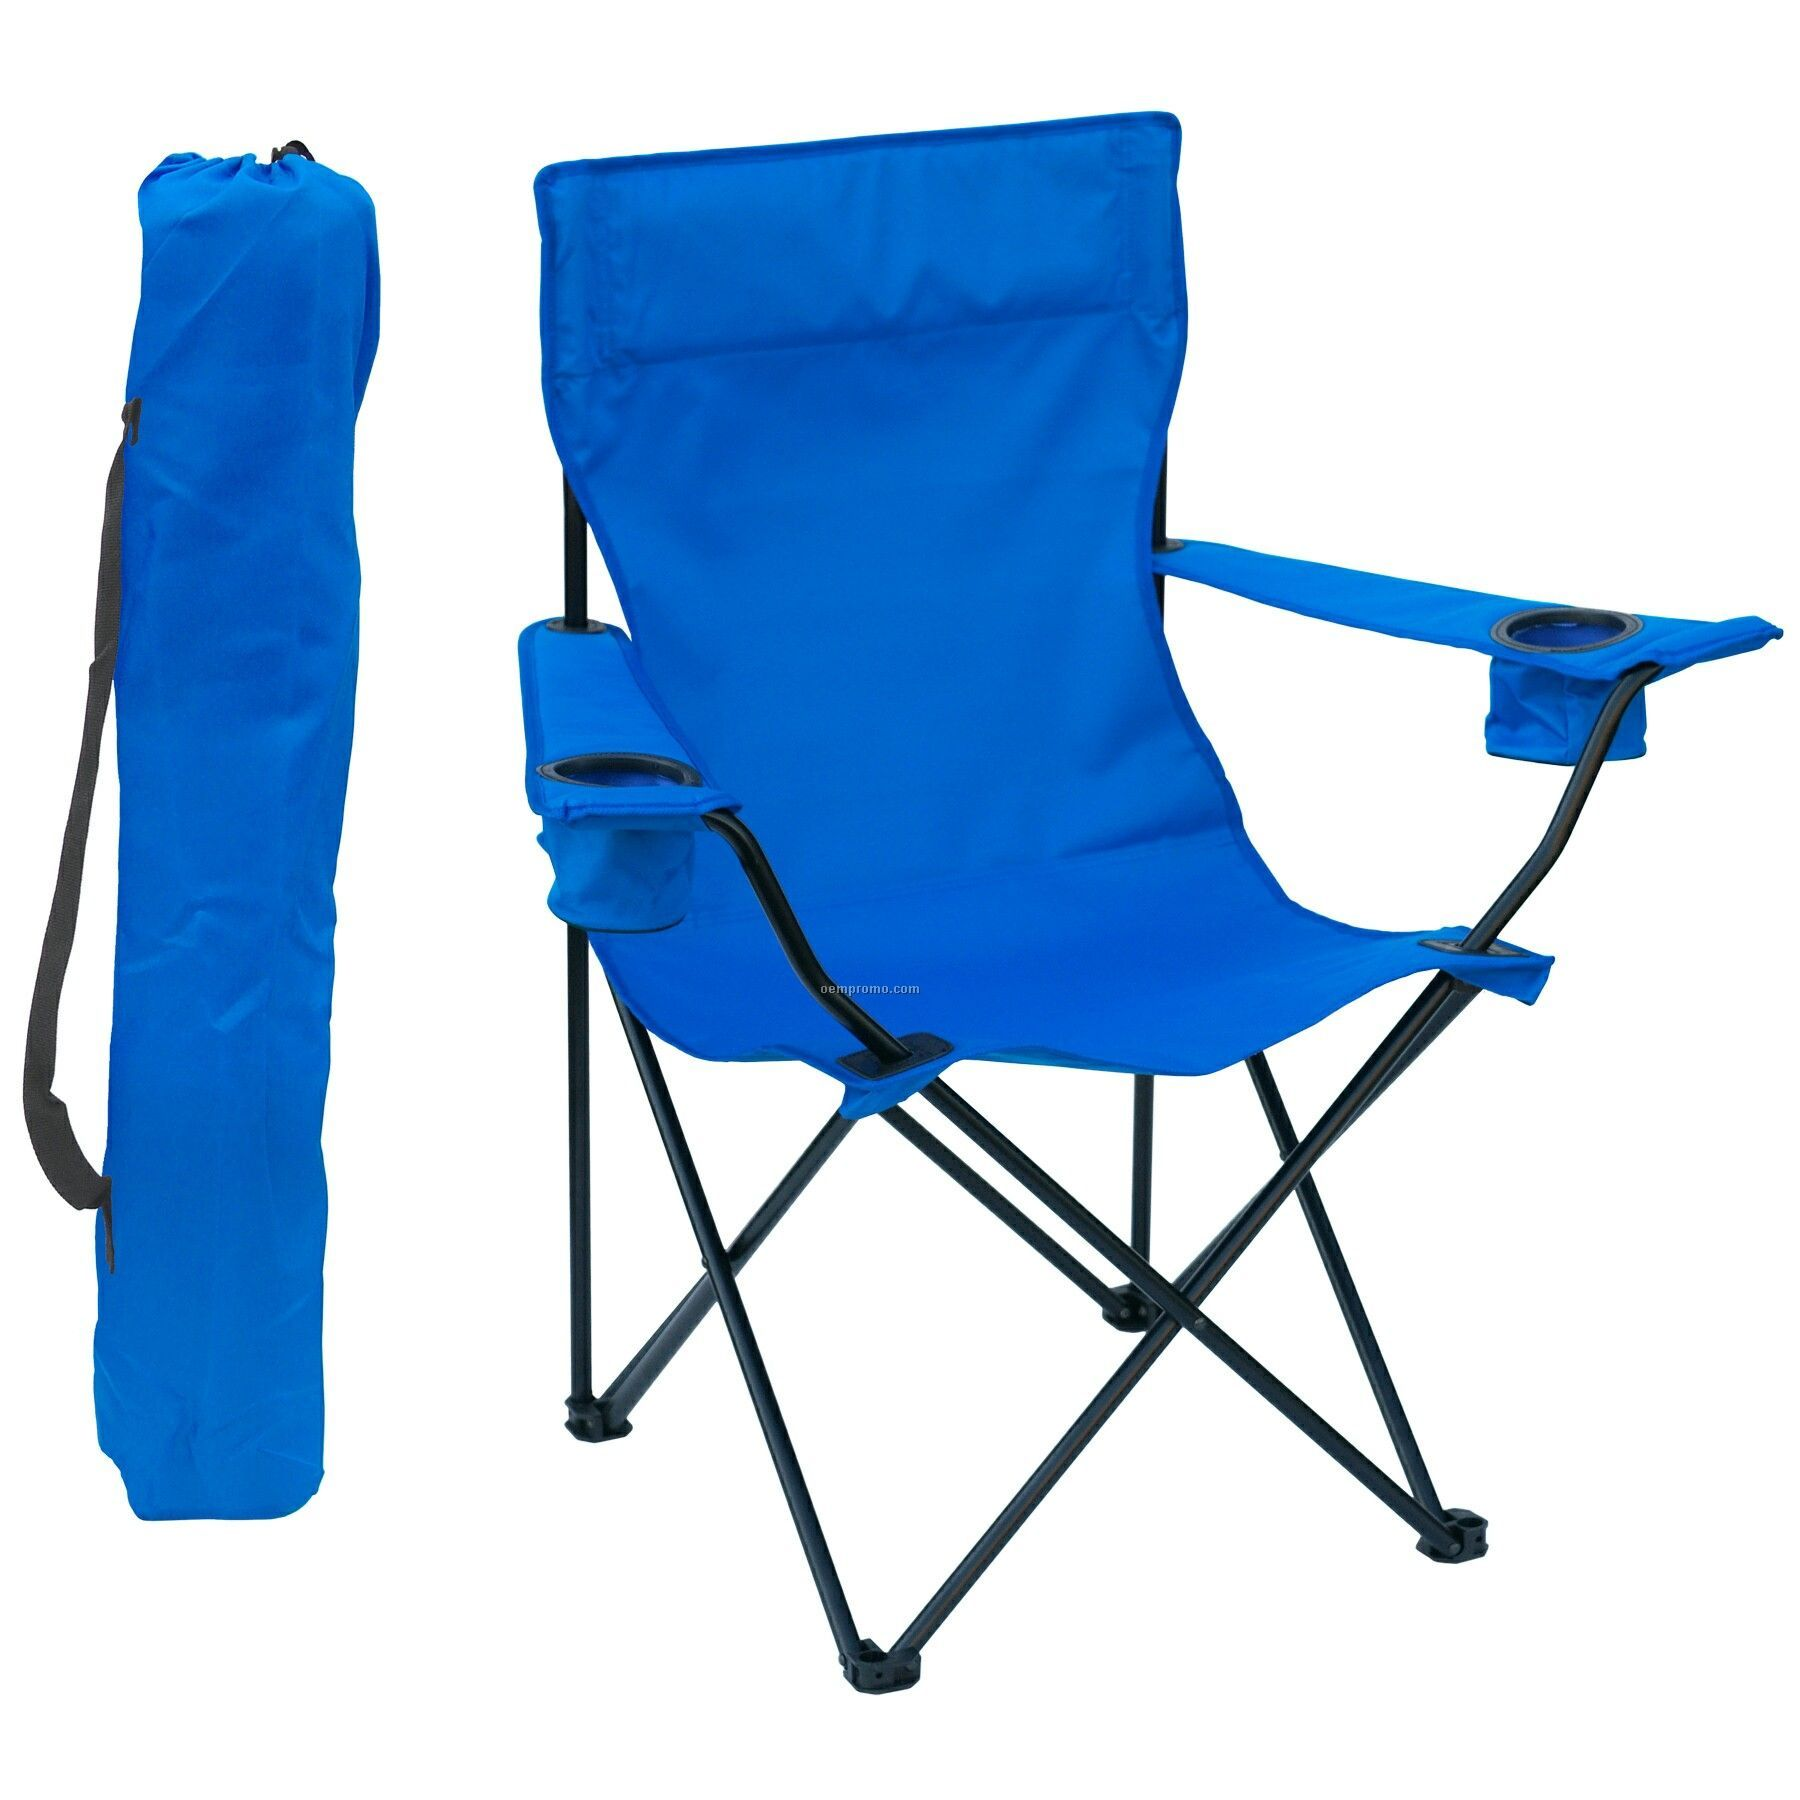 Folding Chair WArm Rests Cup Holders And Carry BagChina - Collapsible chairs